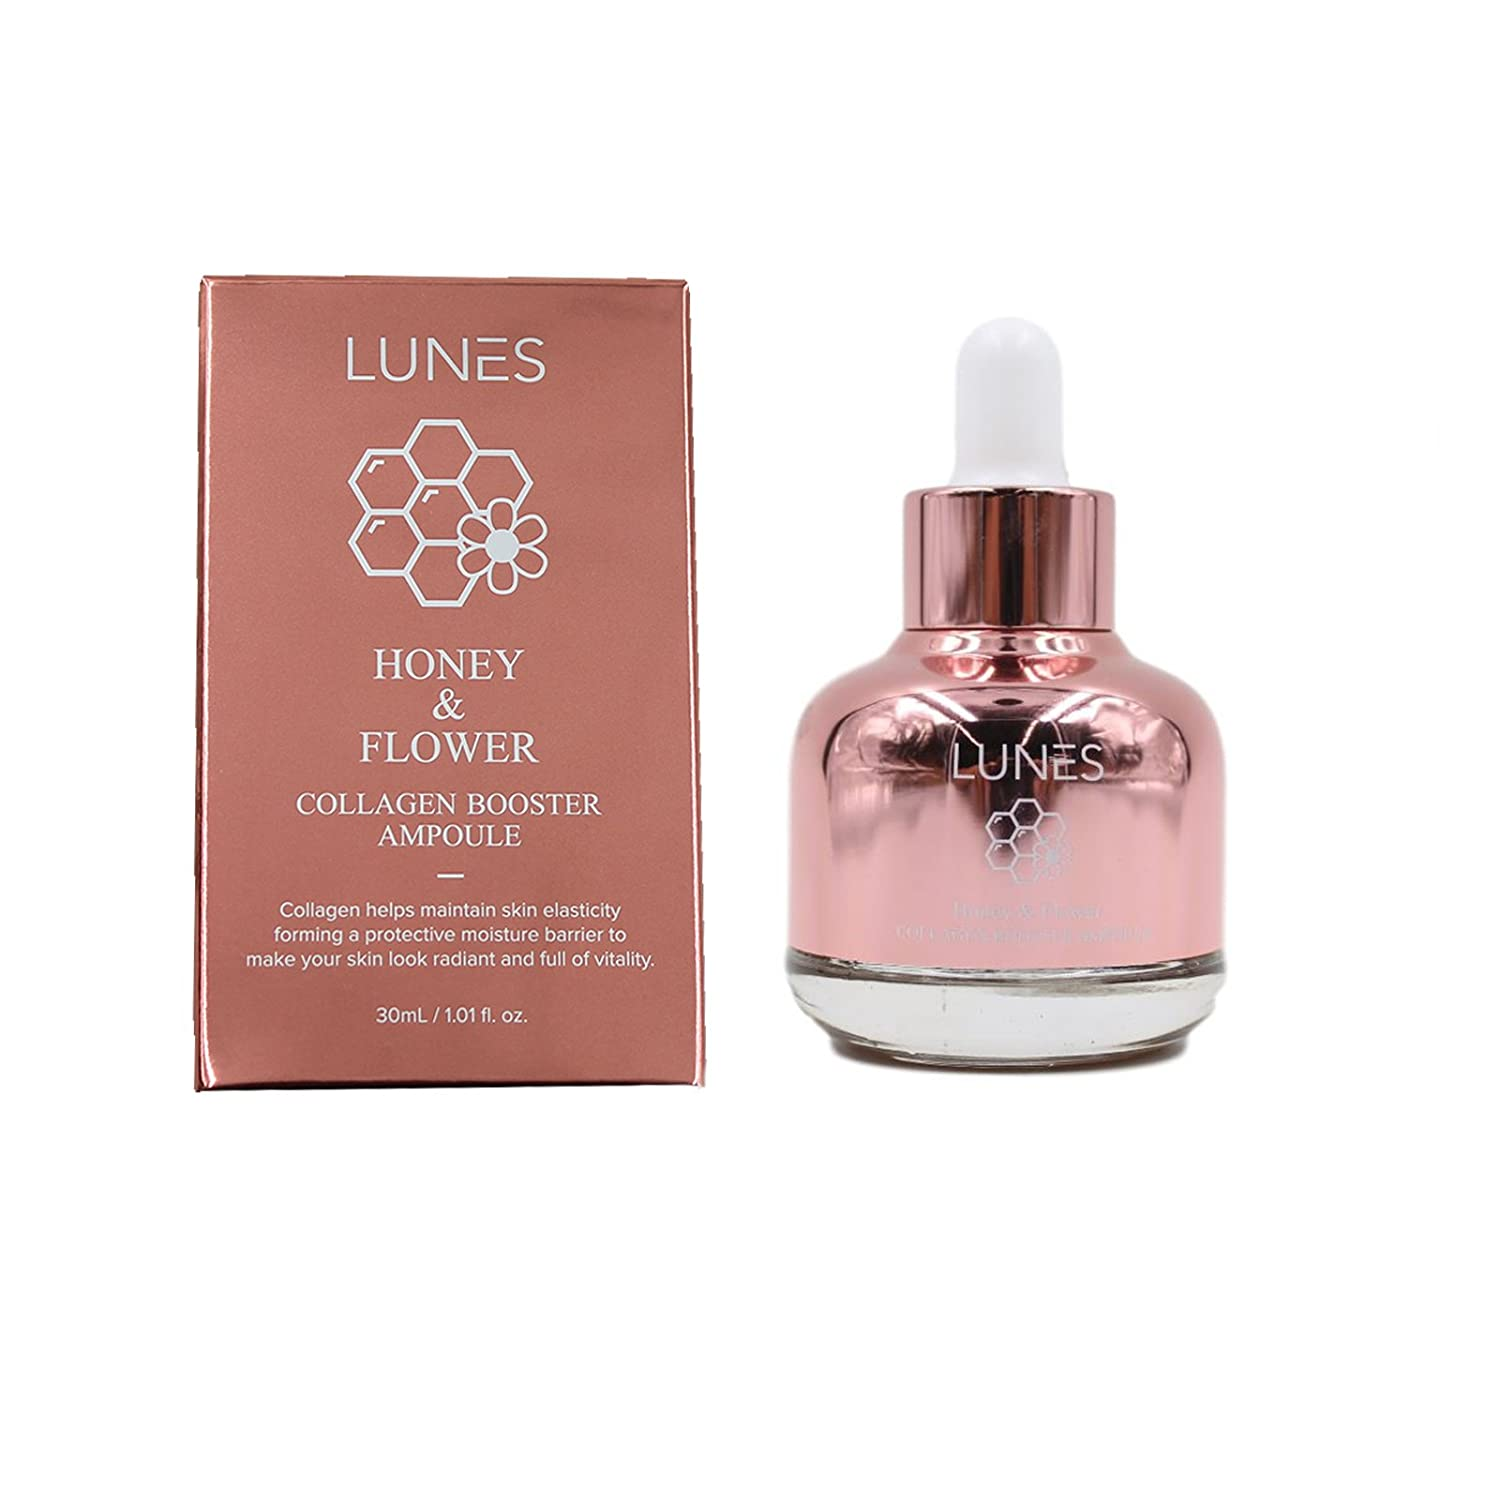 LUNES HONEY & FLOWER Collagen Booster Ampule